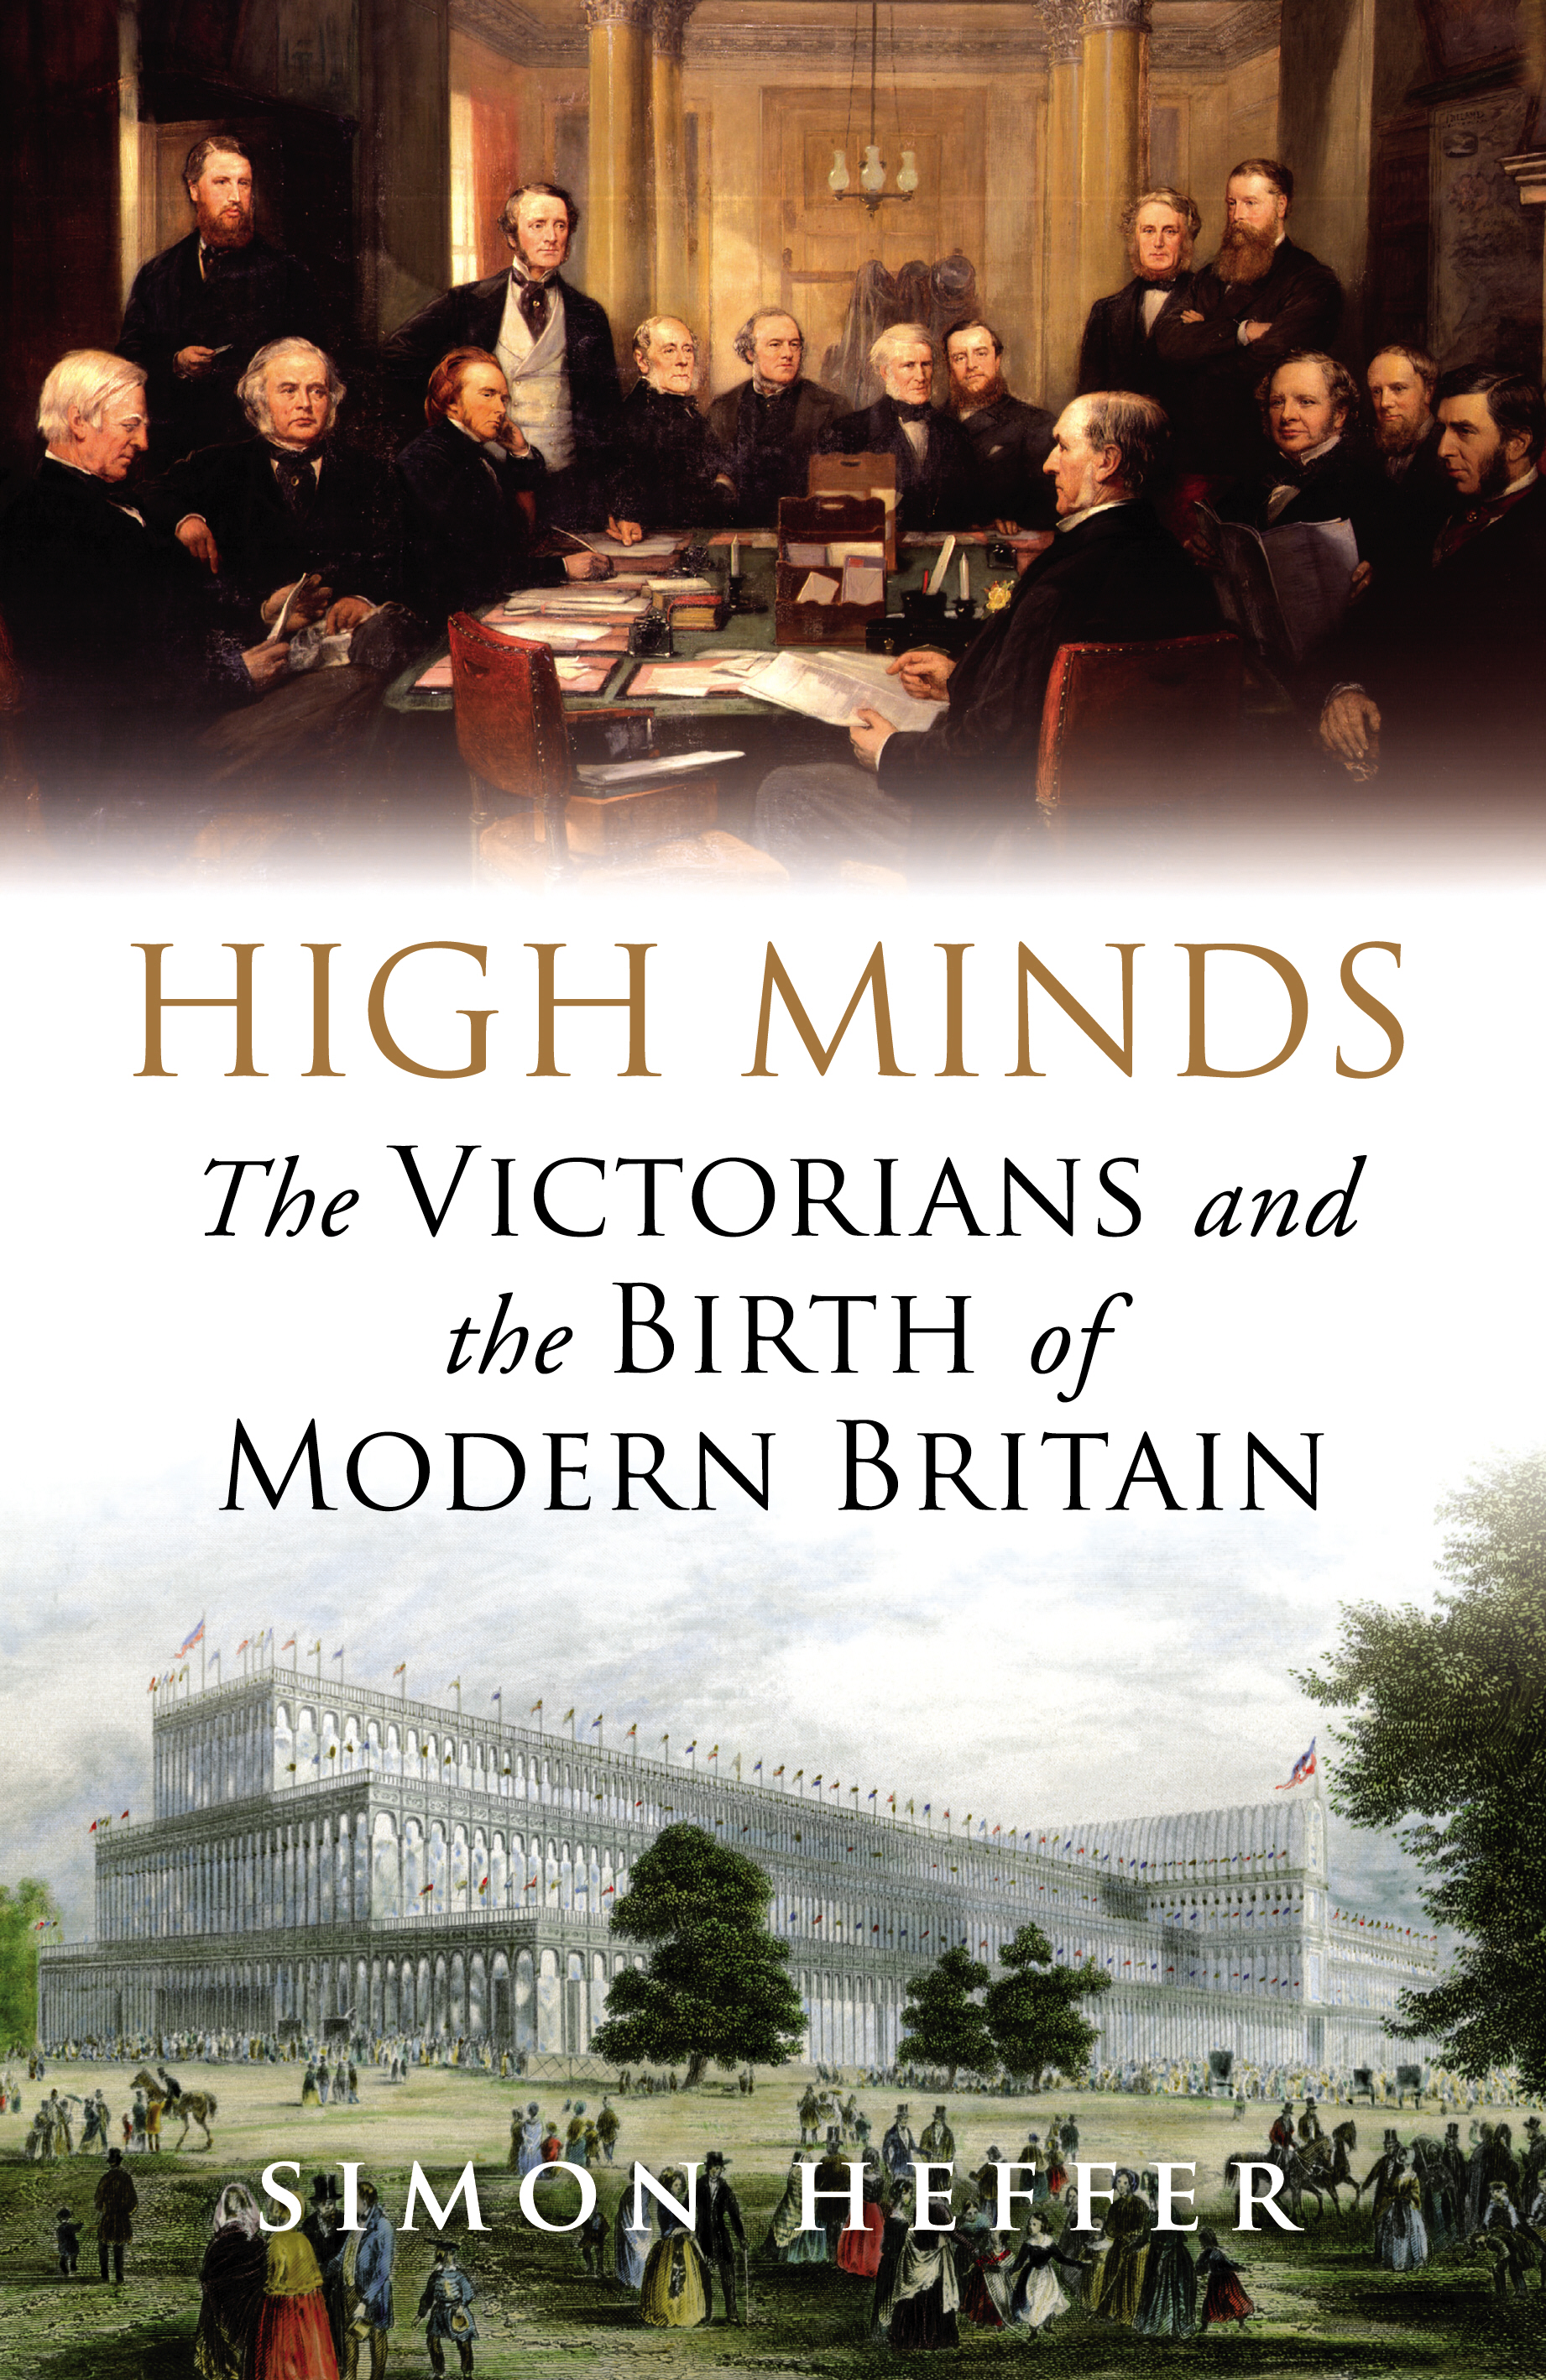 High Minds The Victorians and the Birth of Modern Britain